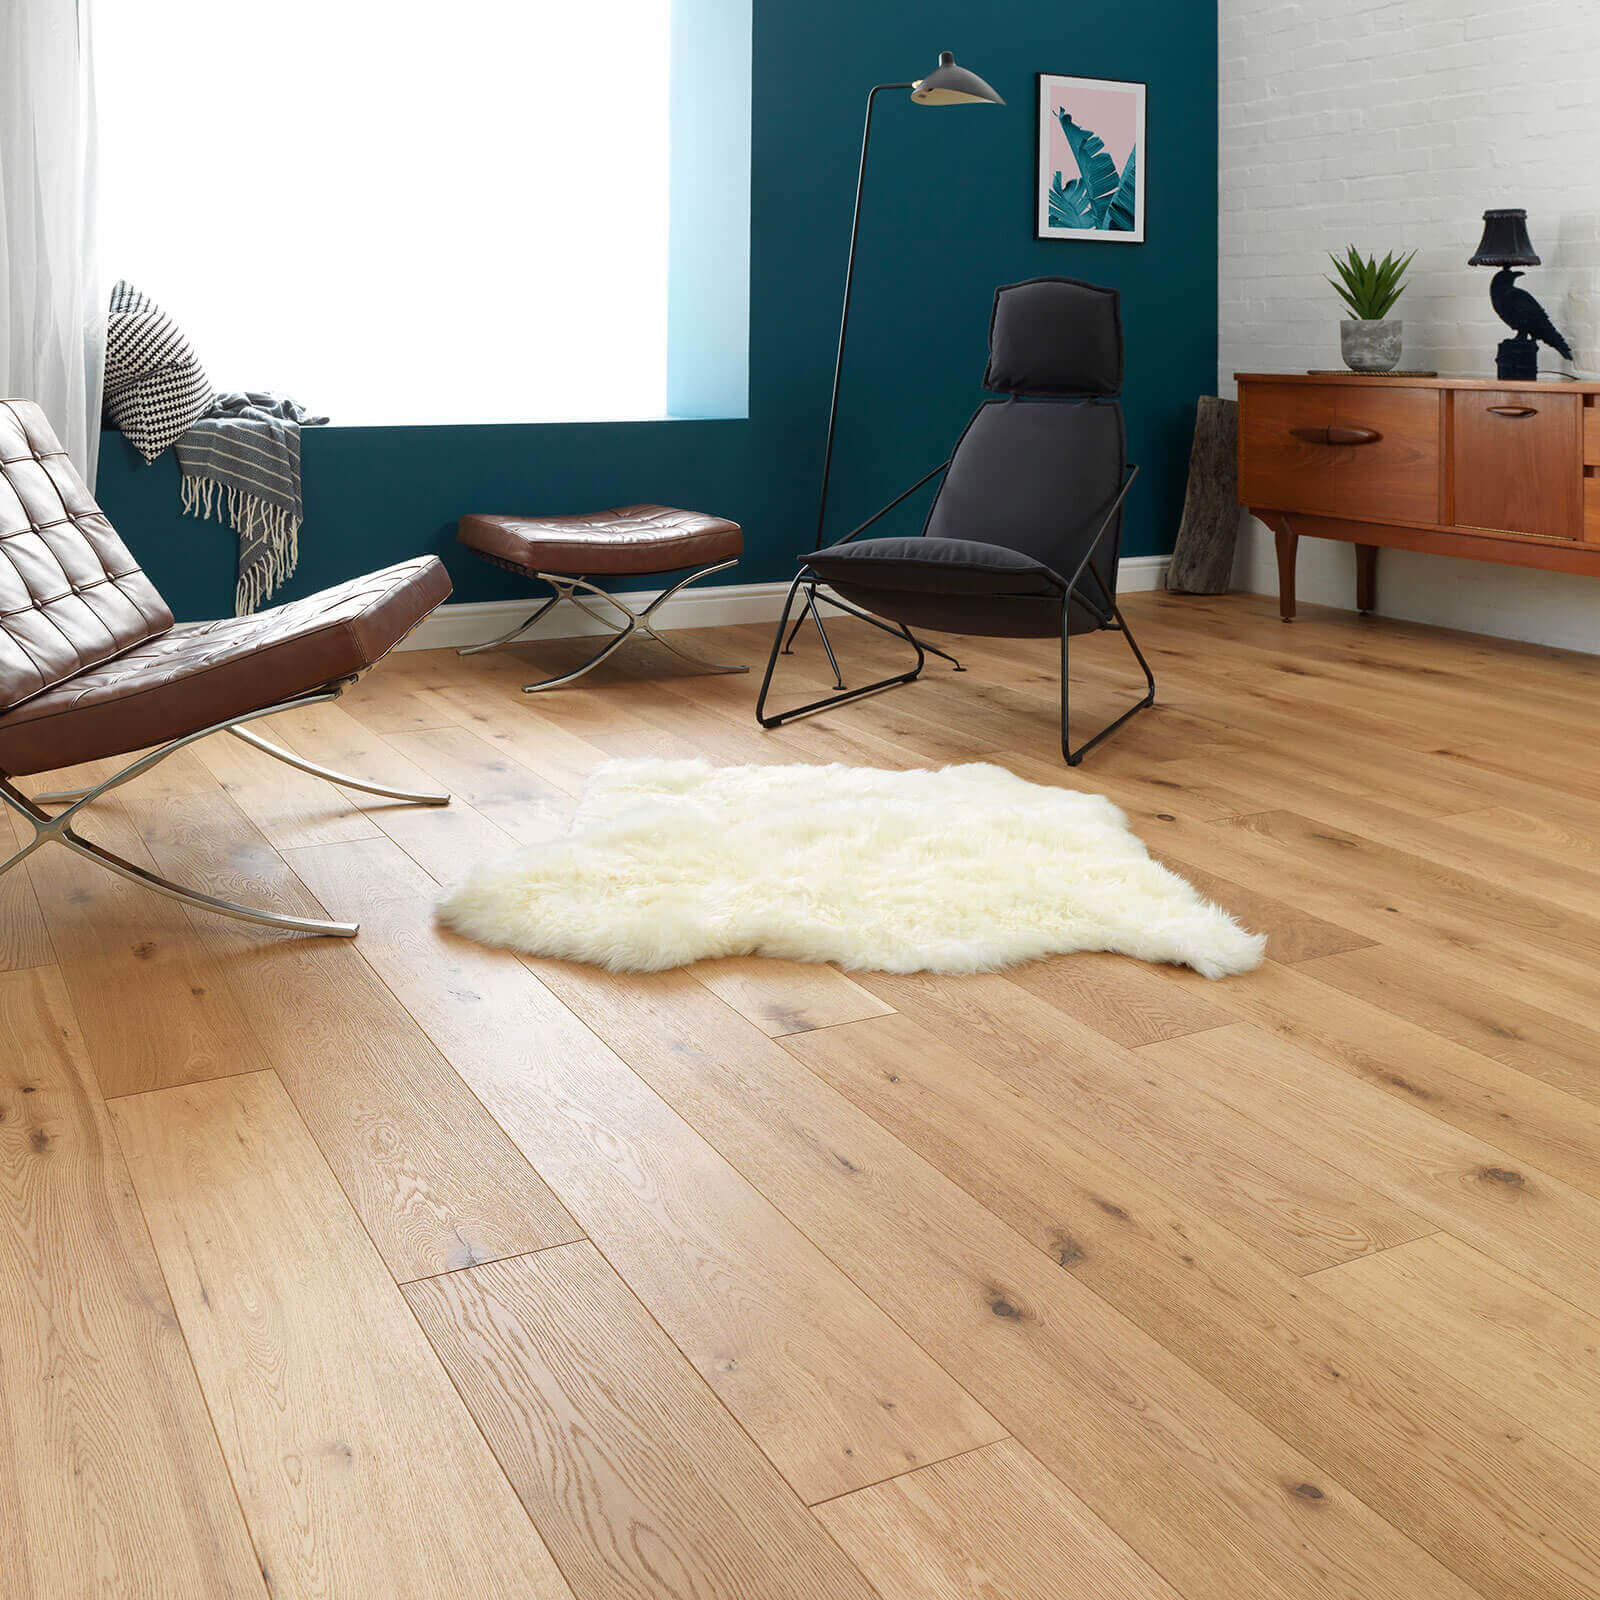 Woodpecker Chepstow Rustic Oak Brushed & Oiled Engineered Wood Flooring 189mm 65-HBO-001